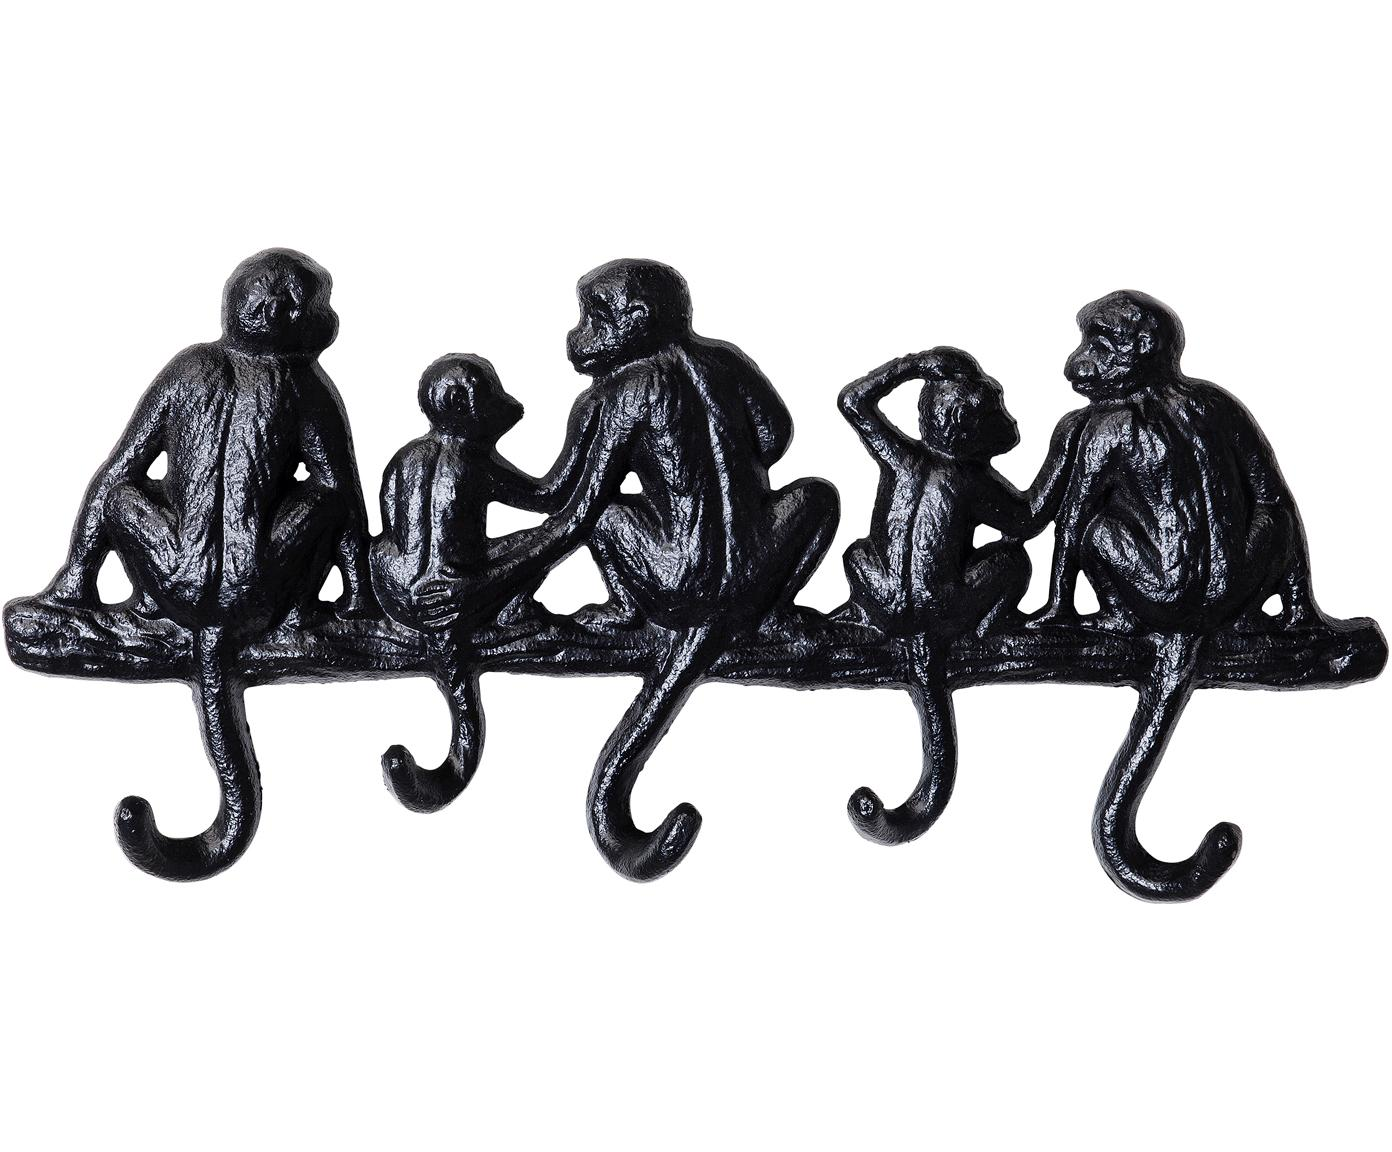 Perchero de pared pequeño Monkey, Metal con pintura en polvo, Negro, An 31 x Al 14 cm